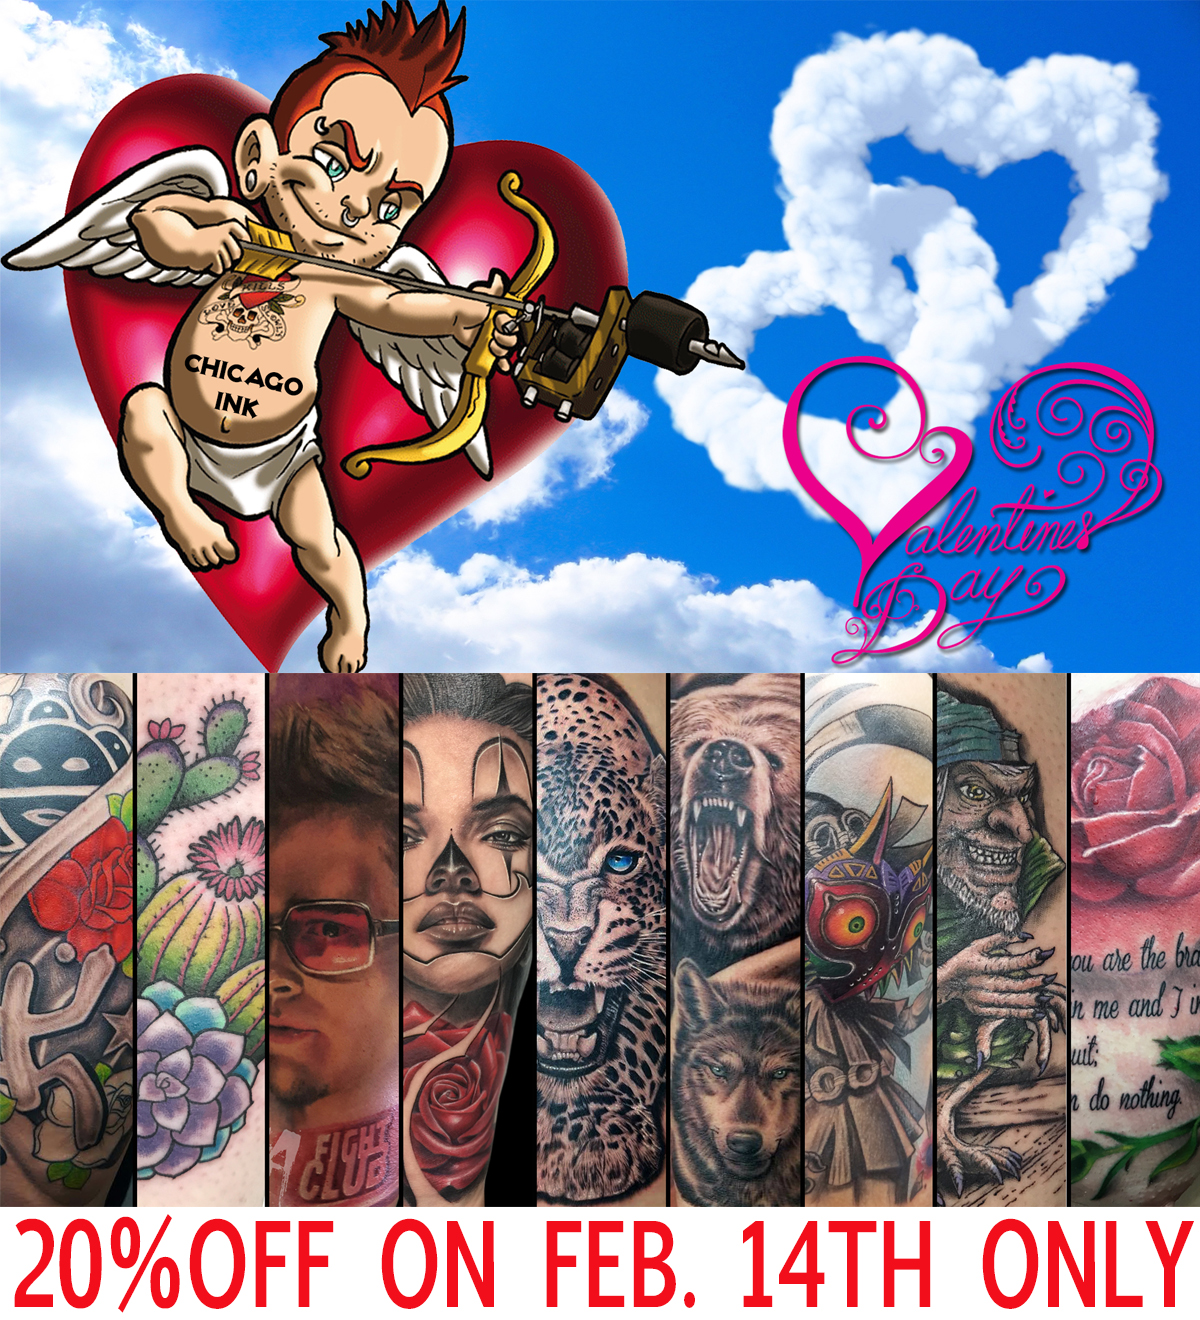 """MAKE YOUR APPOINTMENT AND GET 20%OFF ALL TATTOOS    Make your appointment online or in person and mention """"Valentines Day 20% OFF Special"""""""